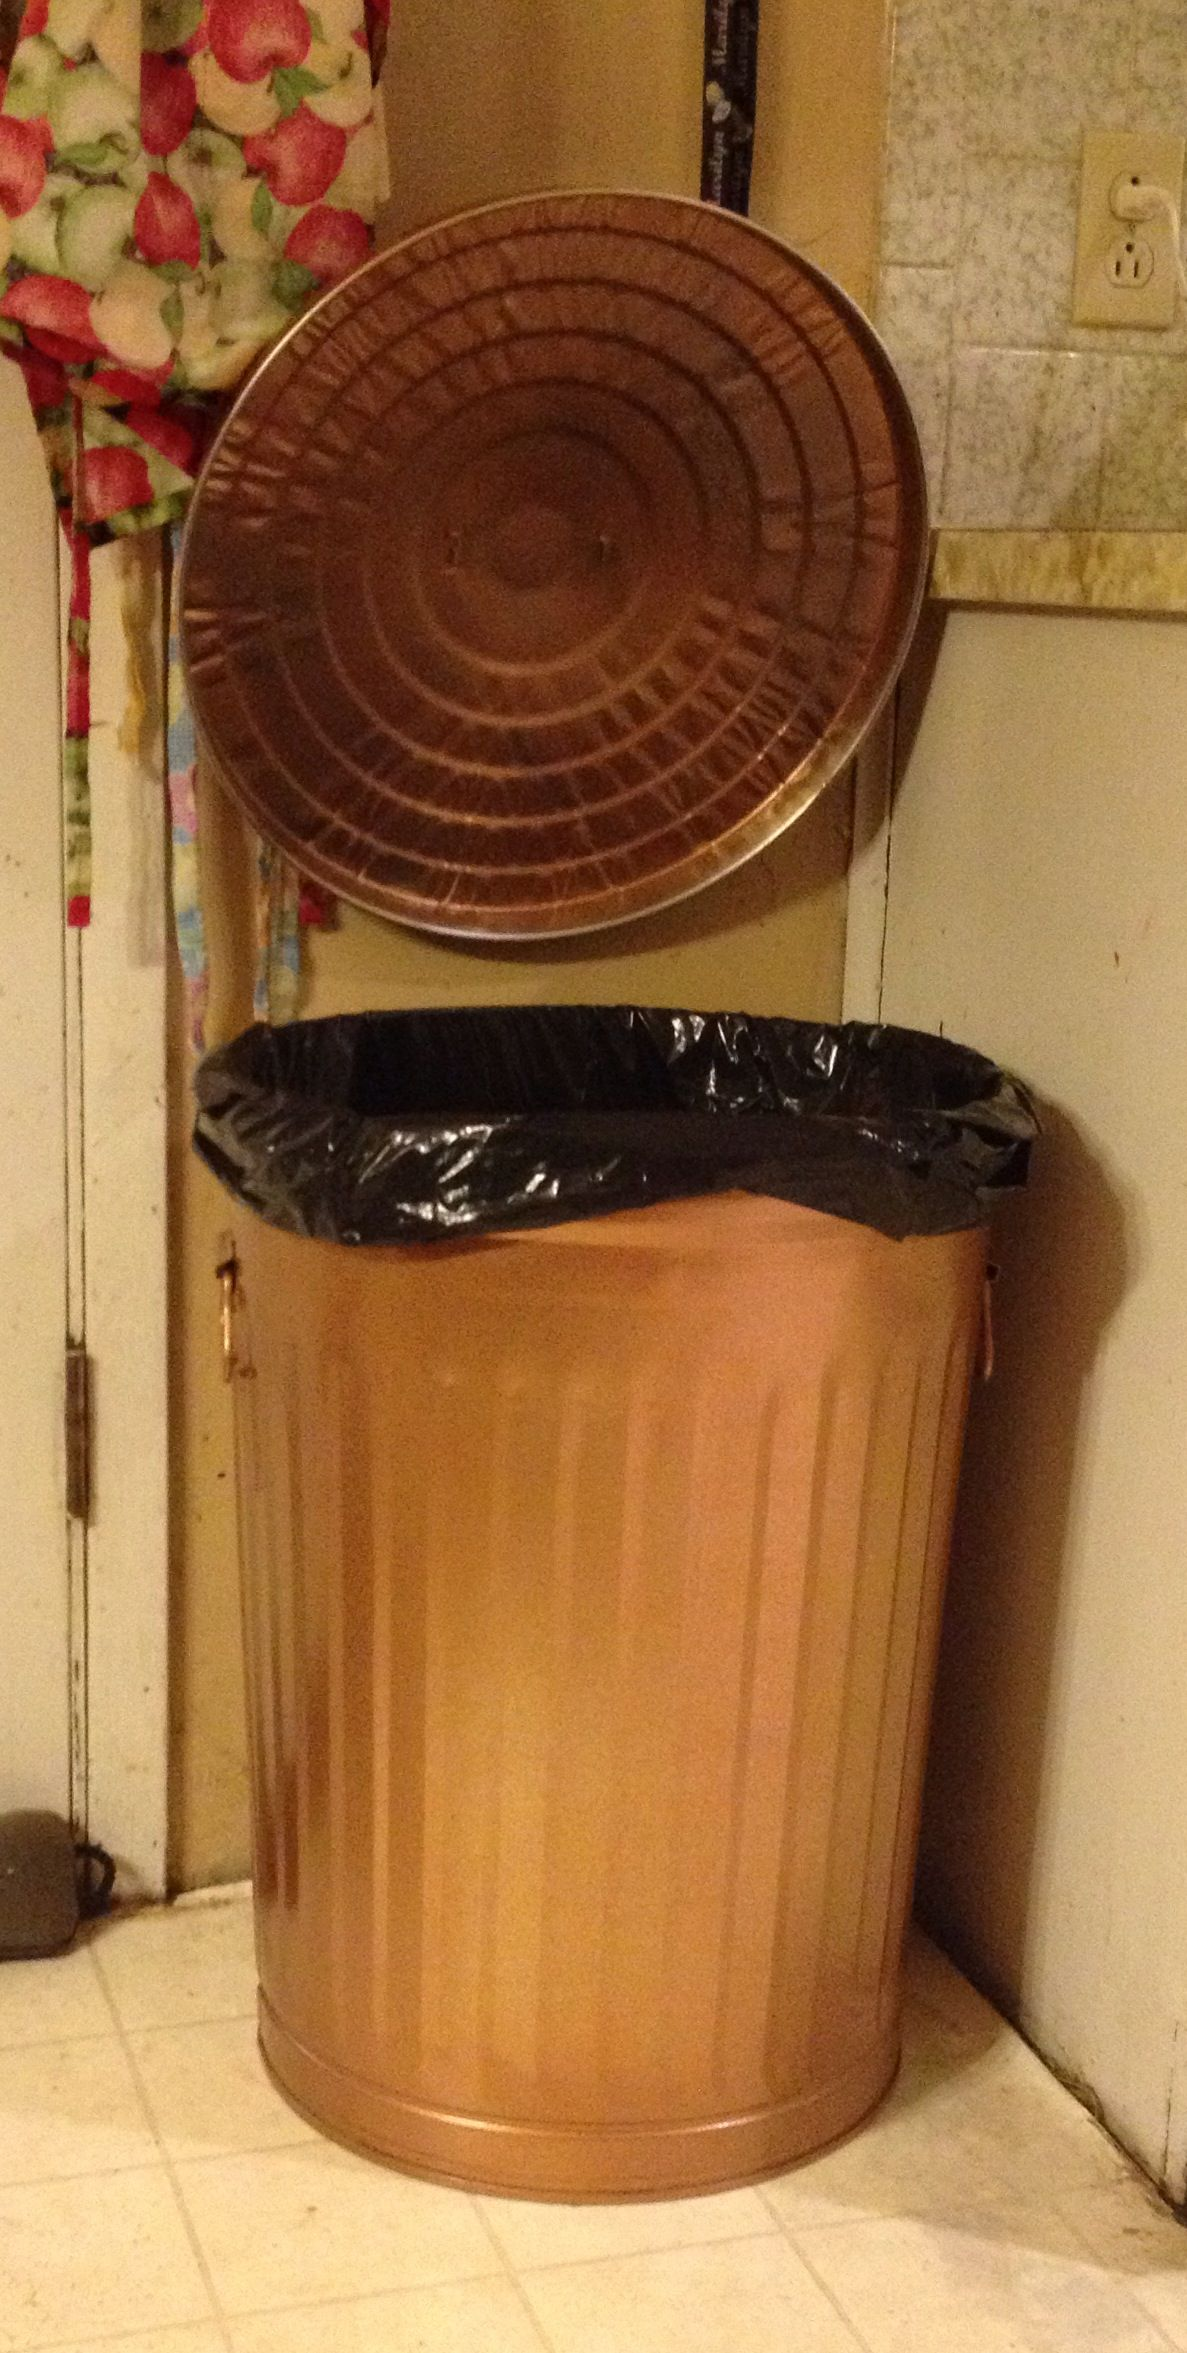 Copper Trash Can With Lid Kitchen Trash Can Lid Hanging On Coat Hook Painted Copper To